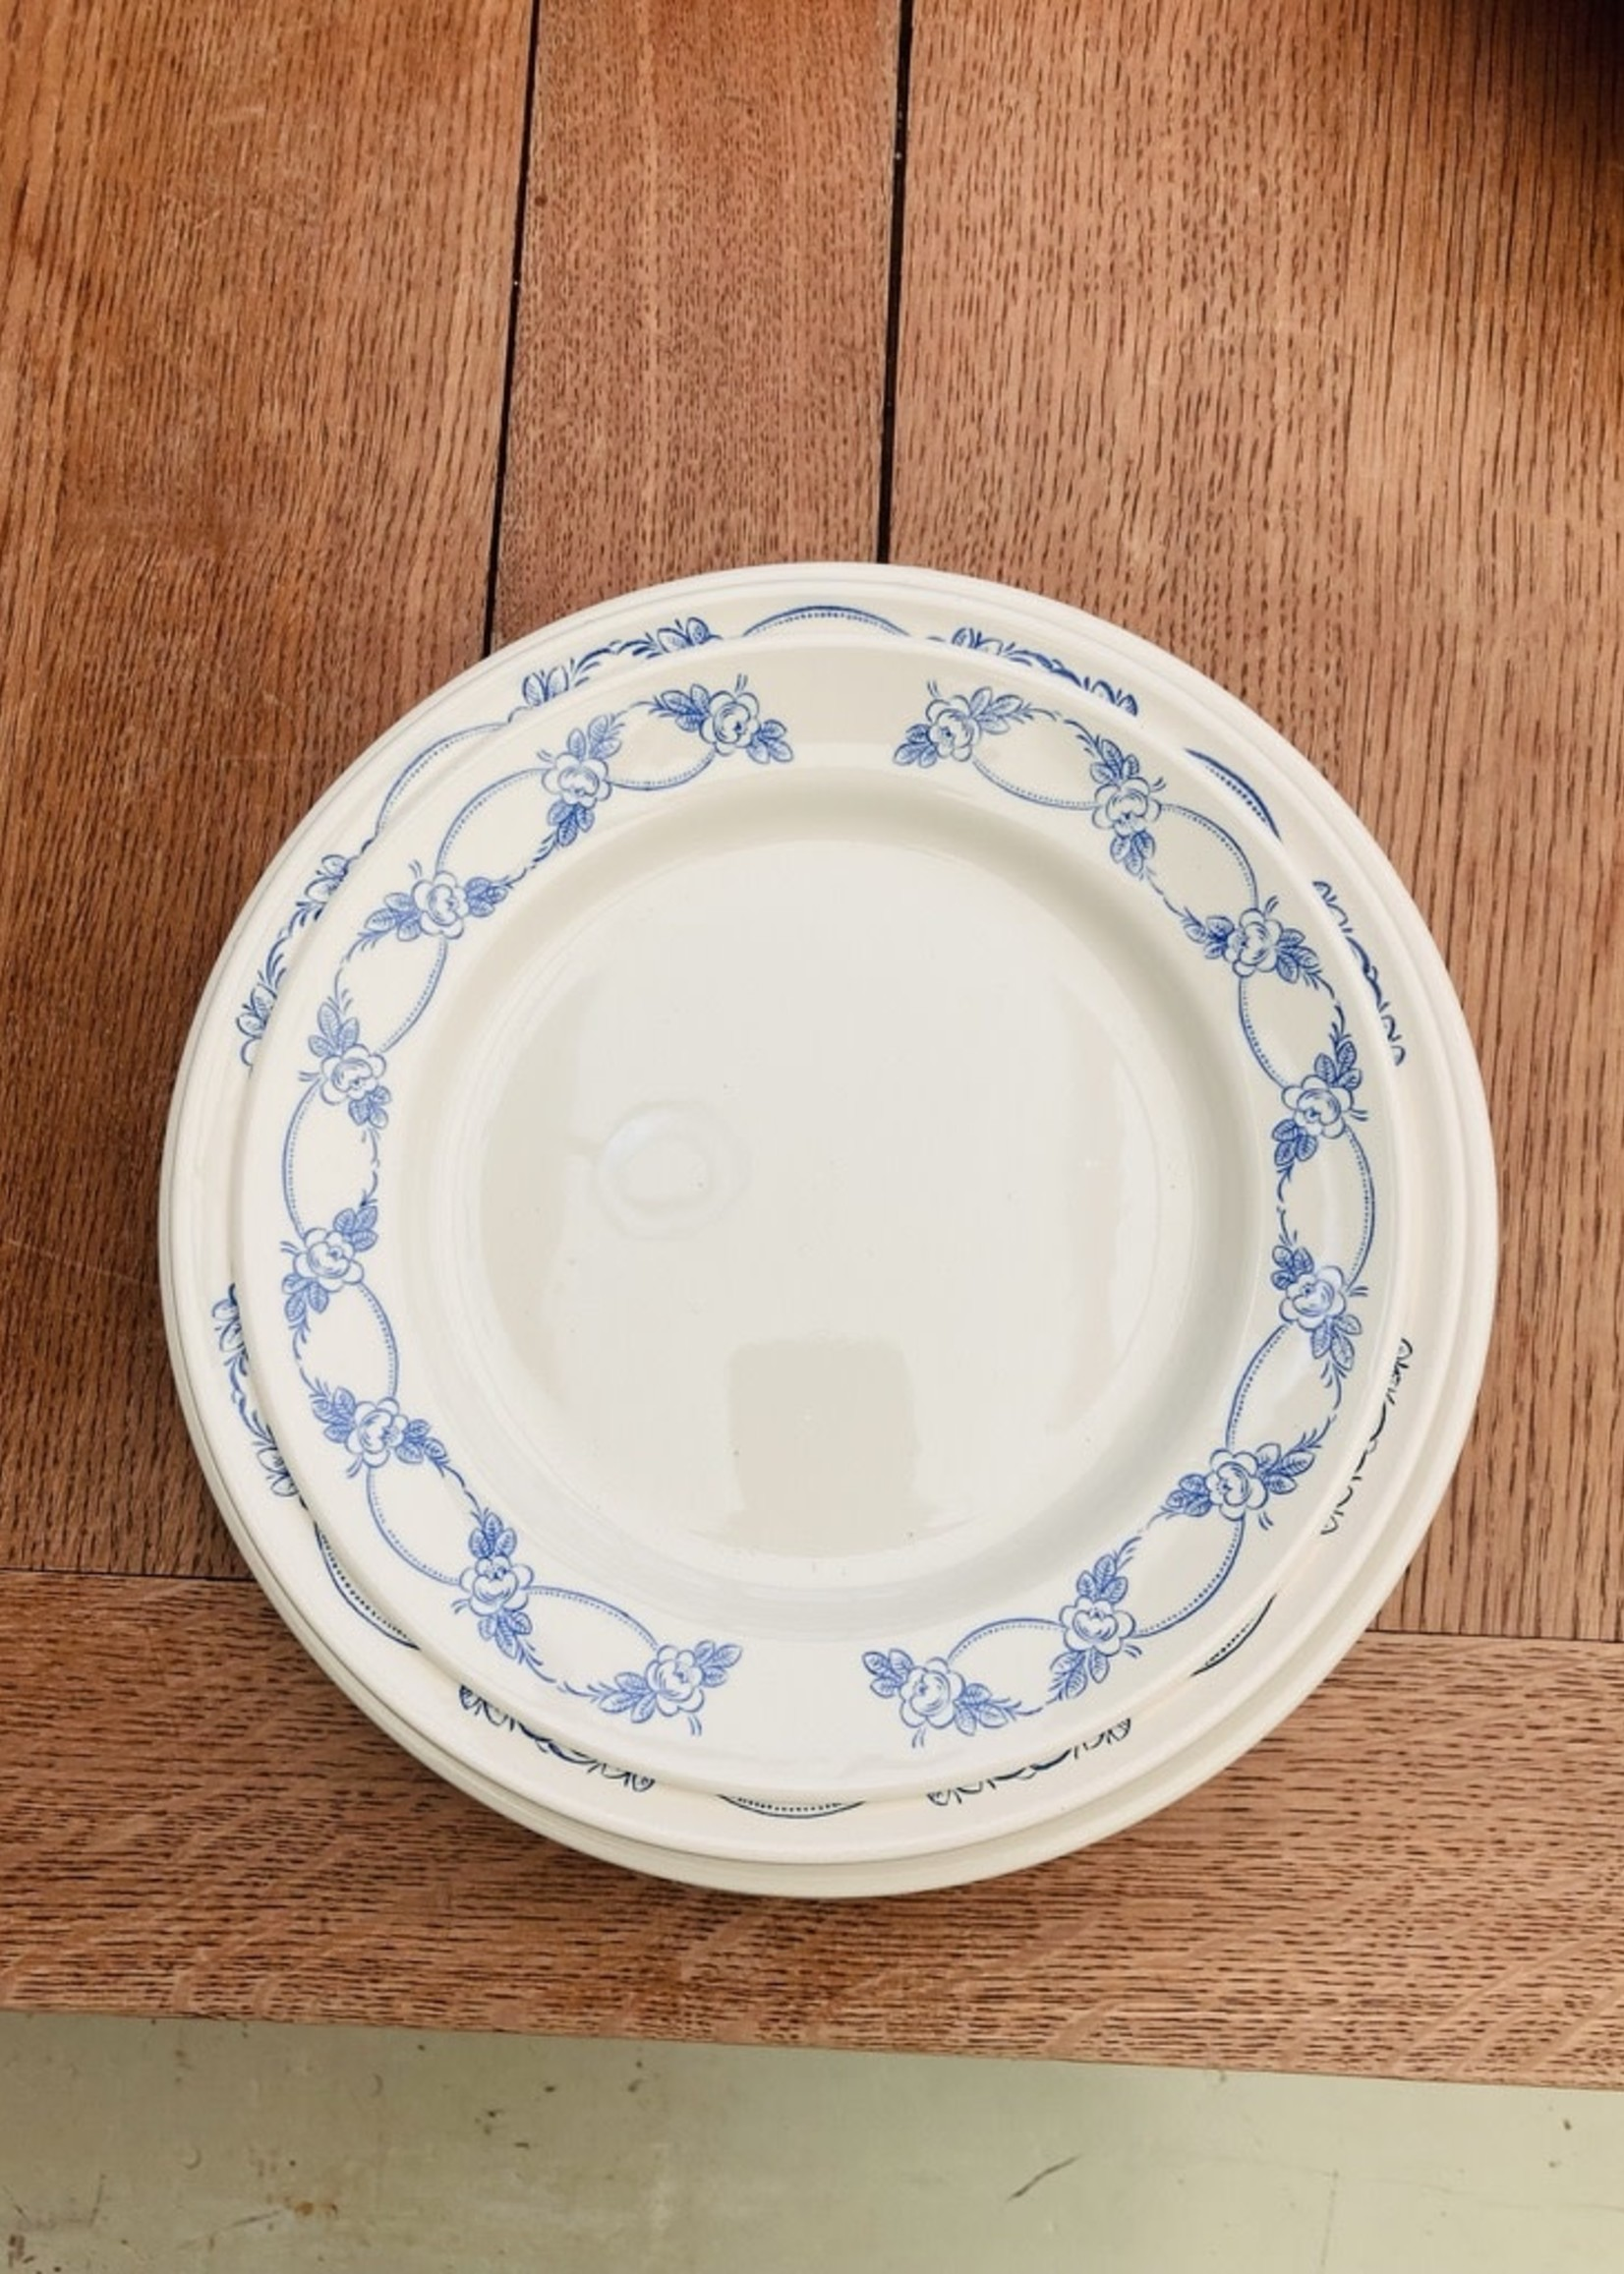 Deep plates With blue flowers on border - No brand